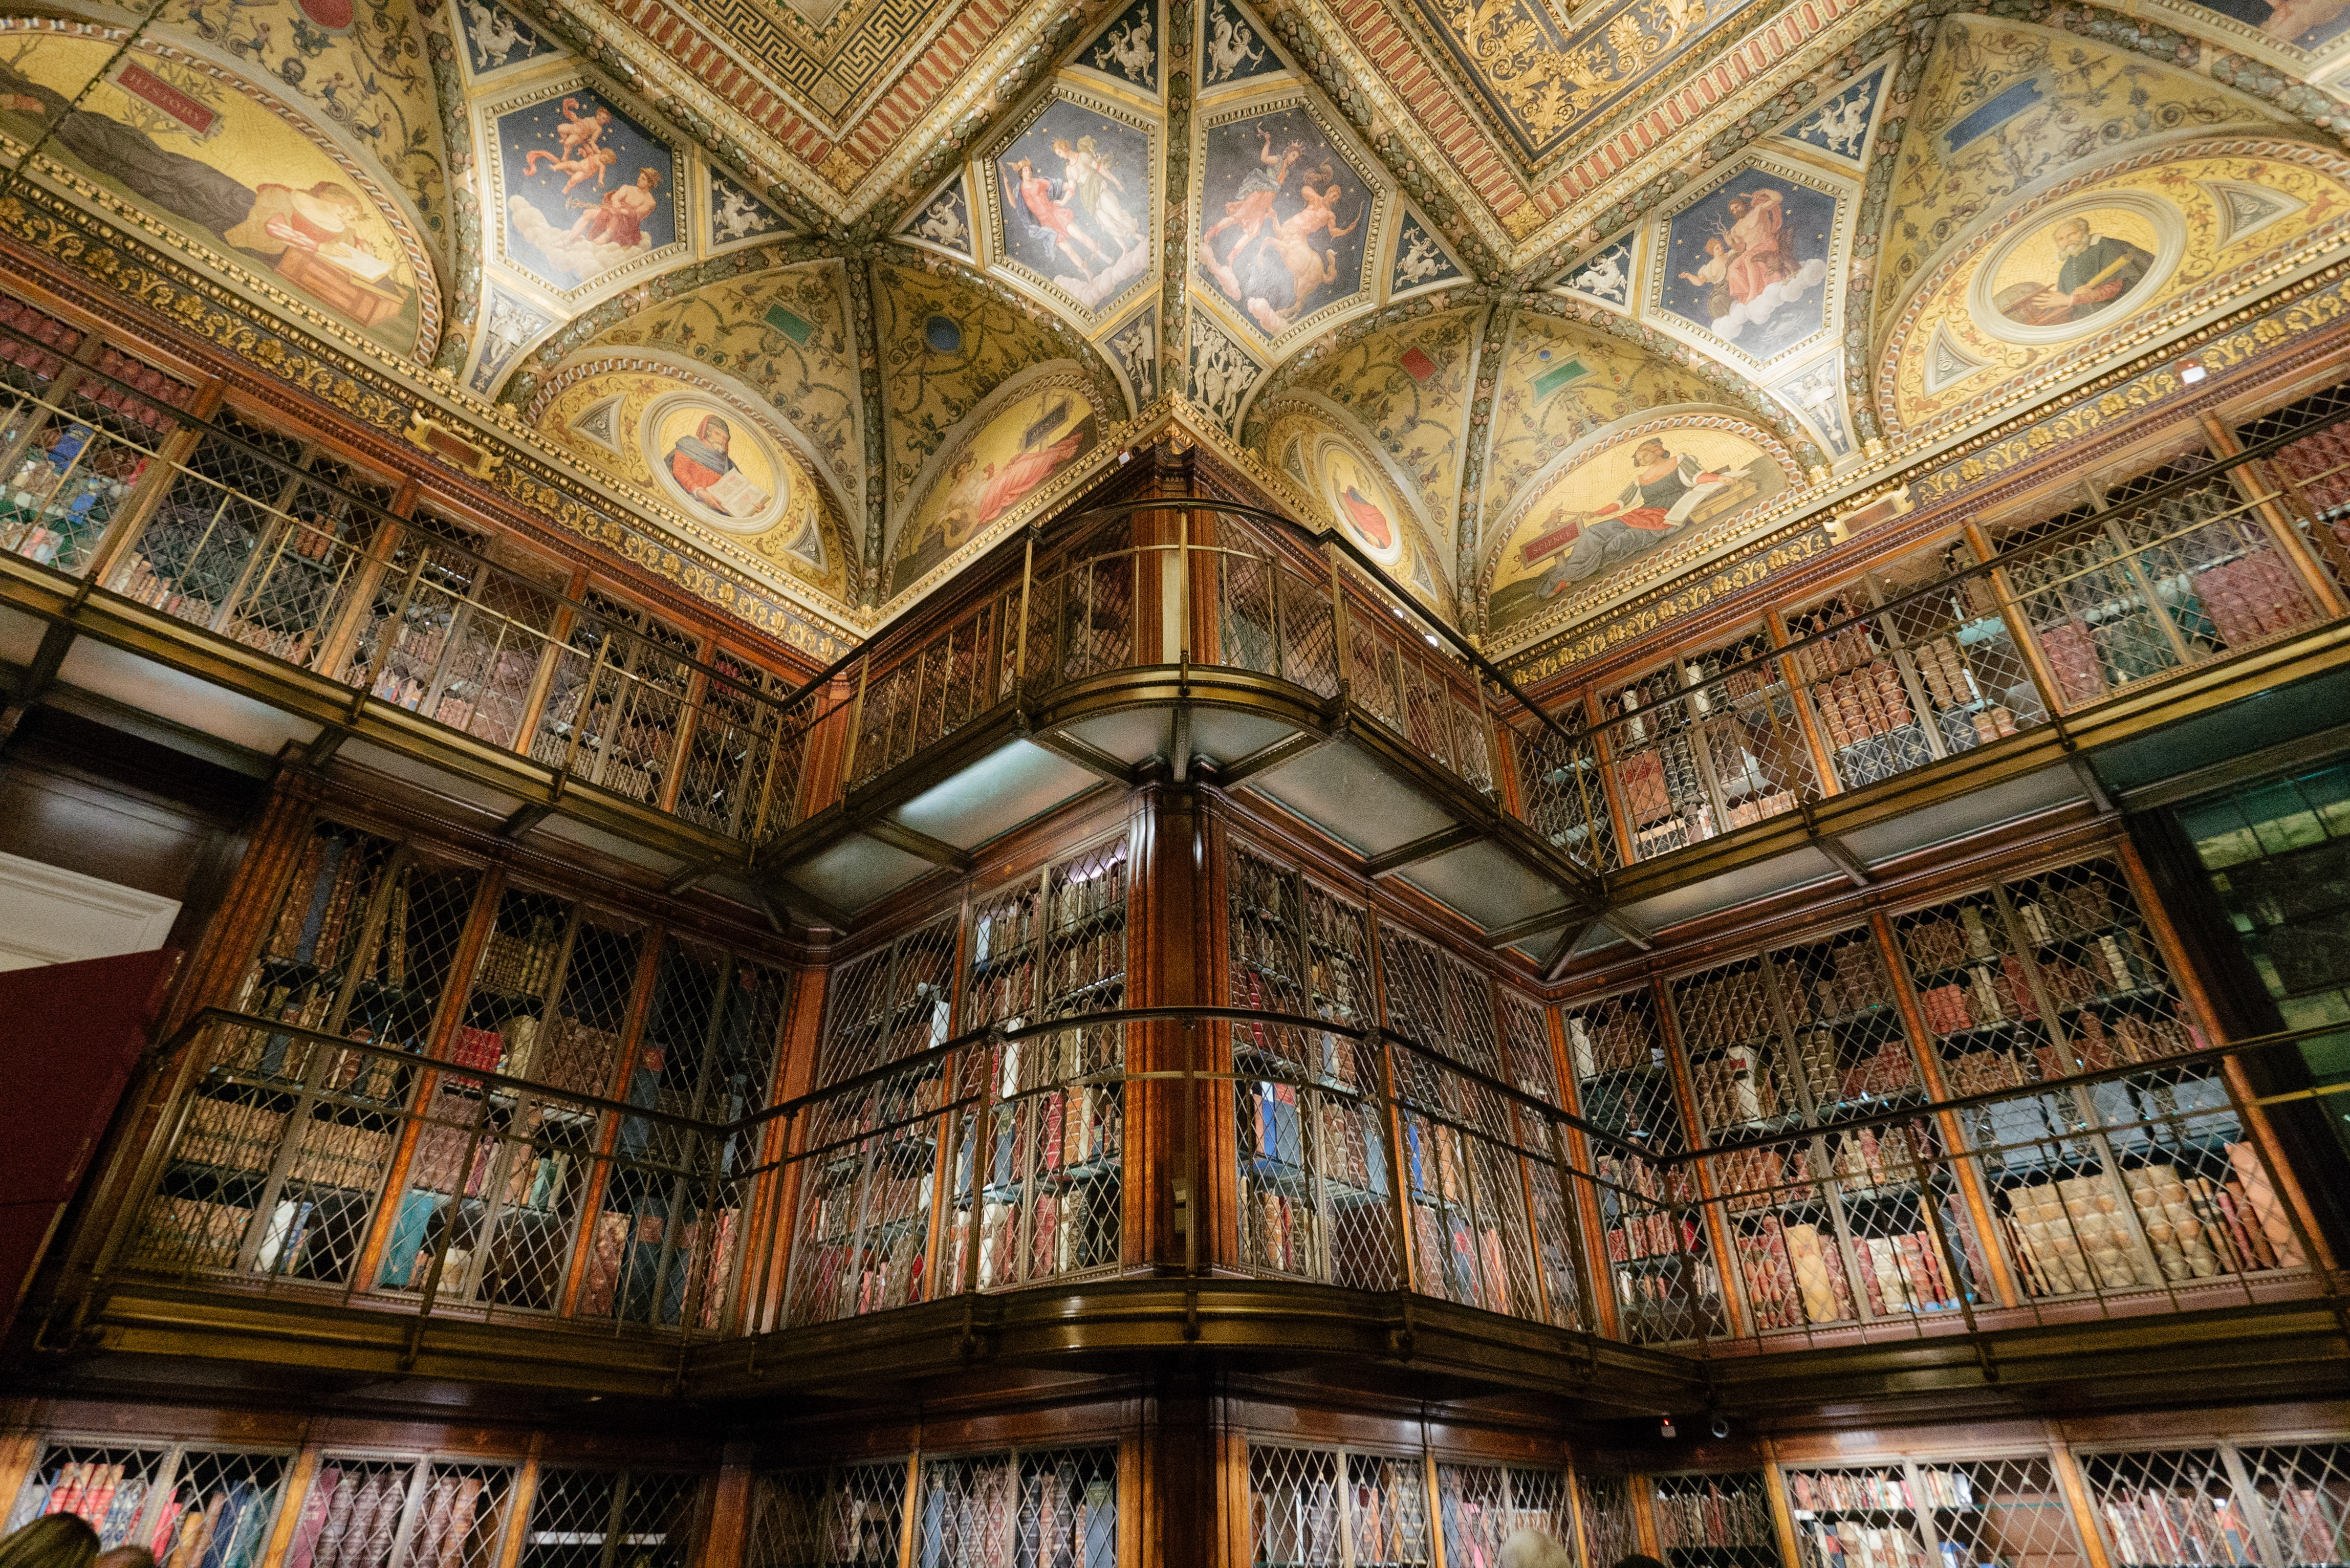 Shelves of books and ornate, historic ceiling architecture in The Morgan Library & Museum